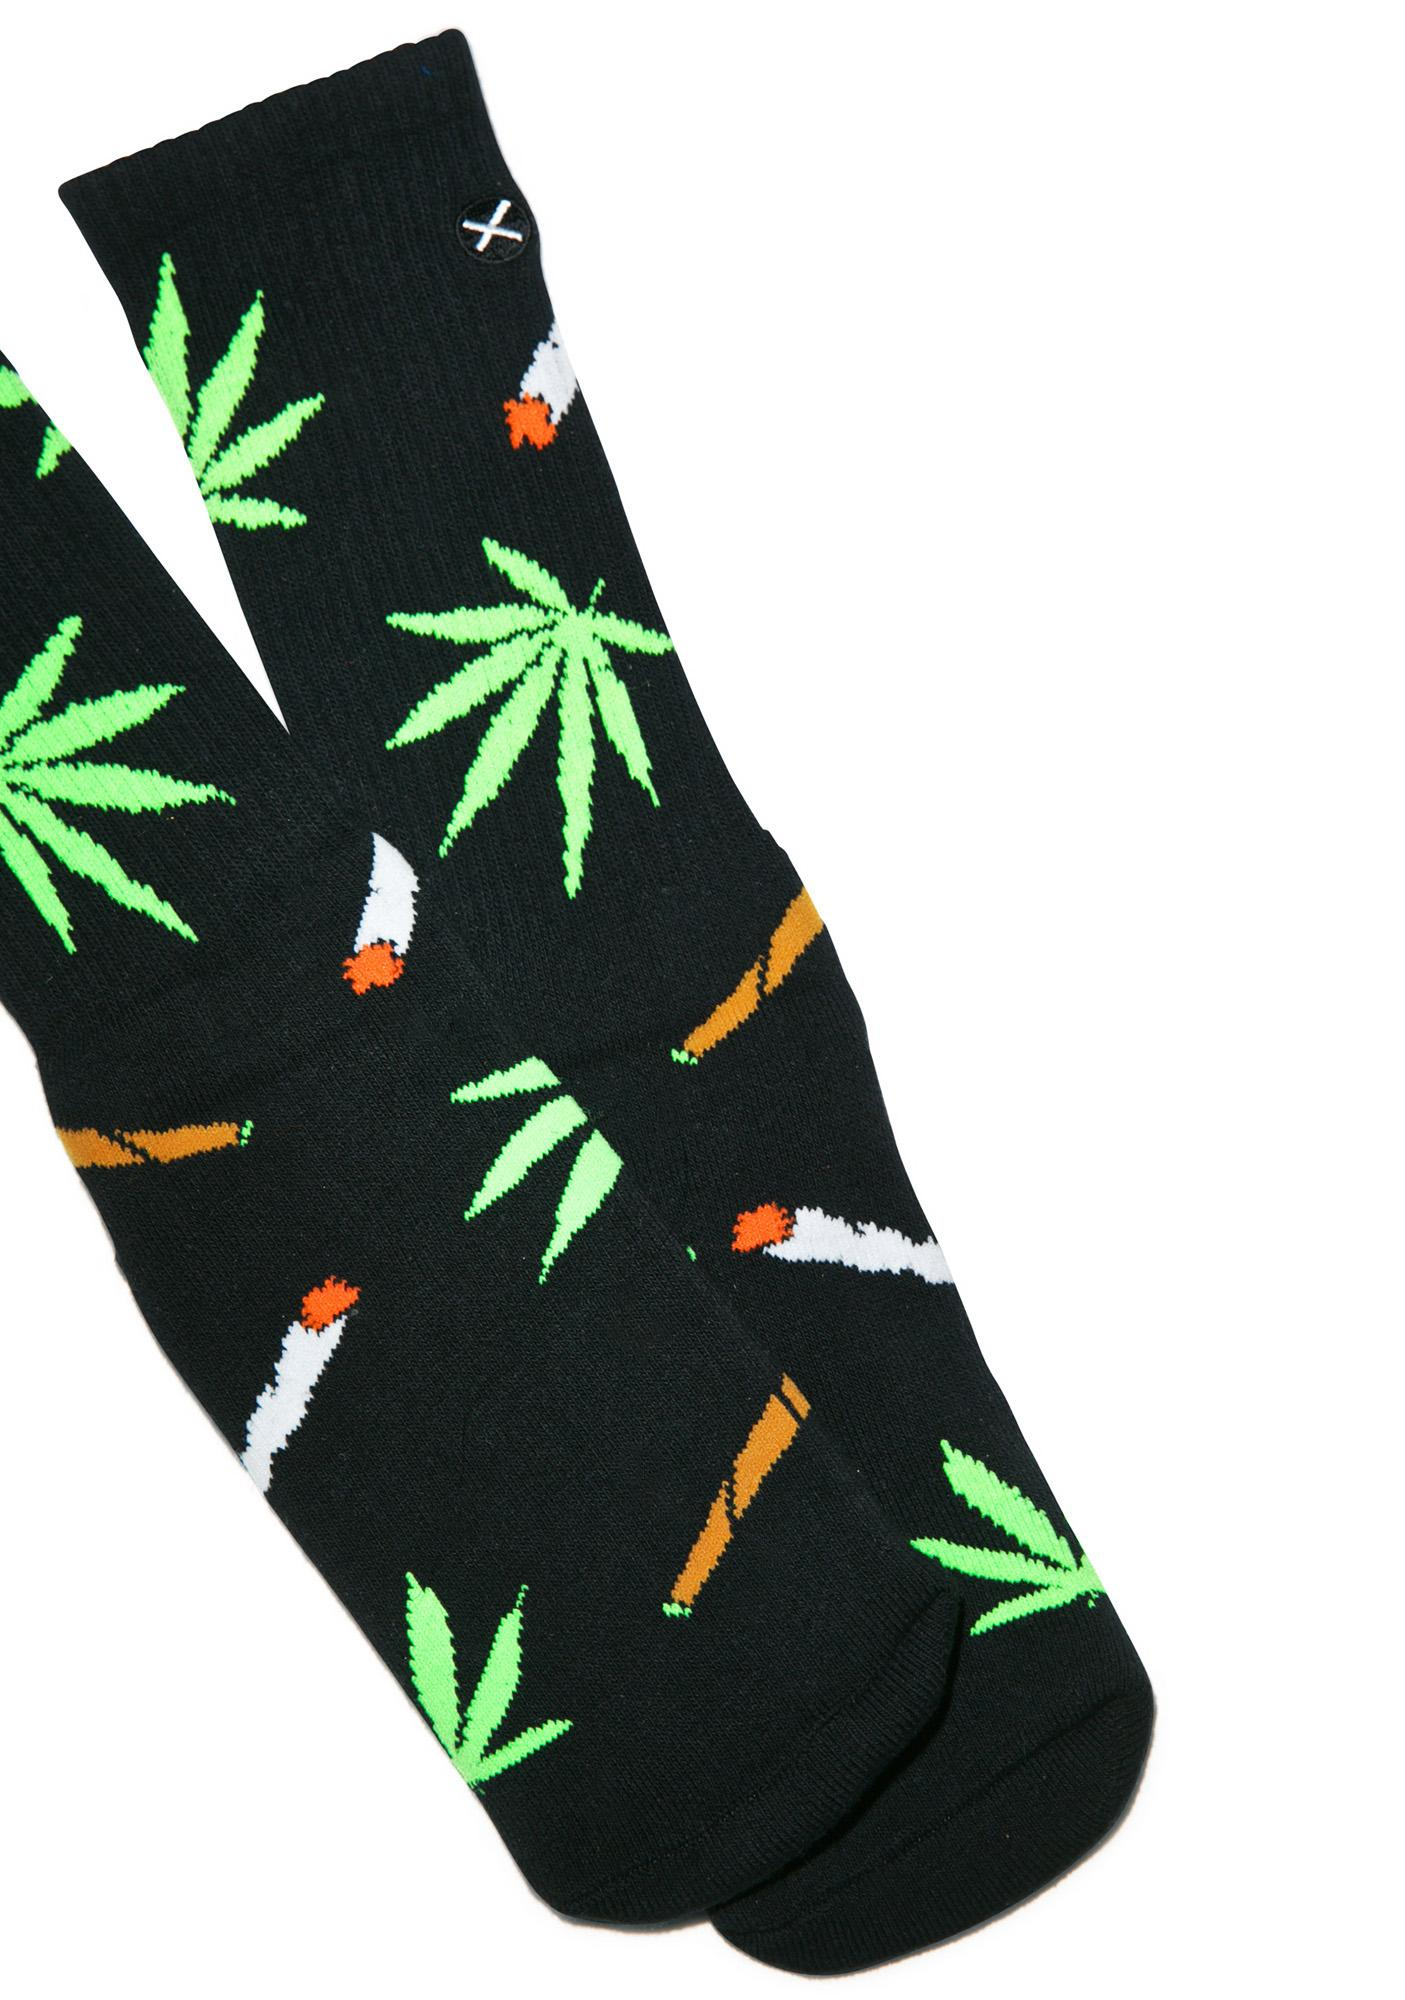 Odd Sox Weedies Socks